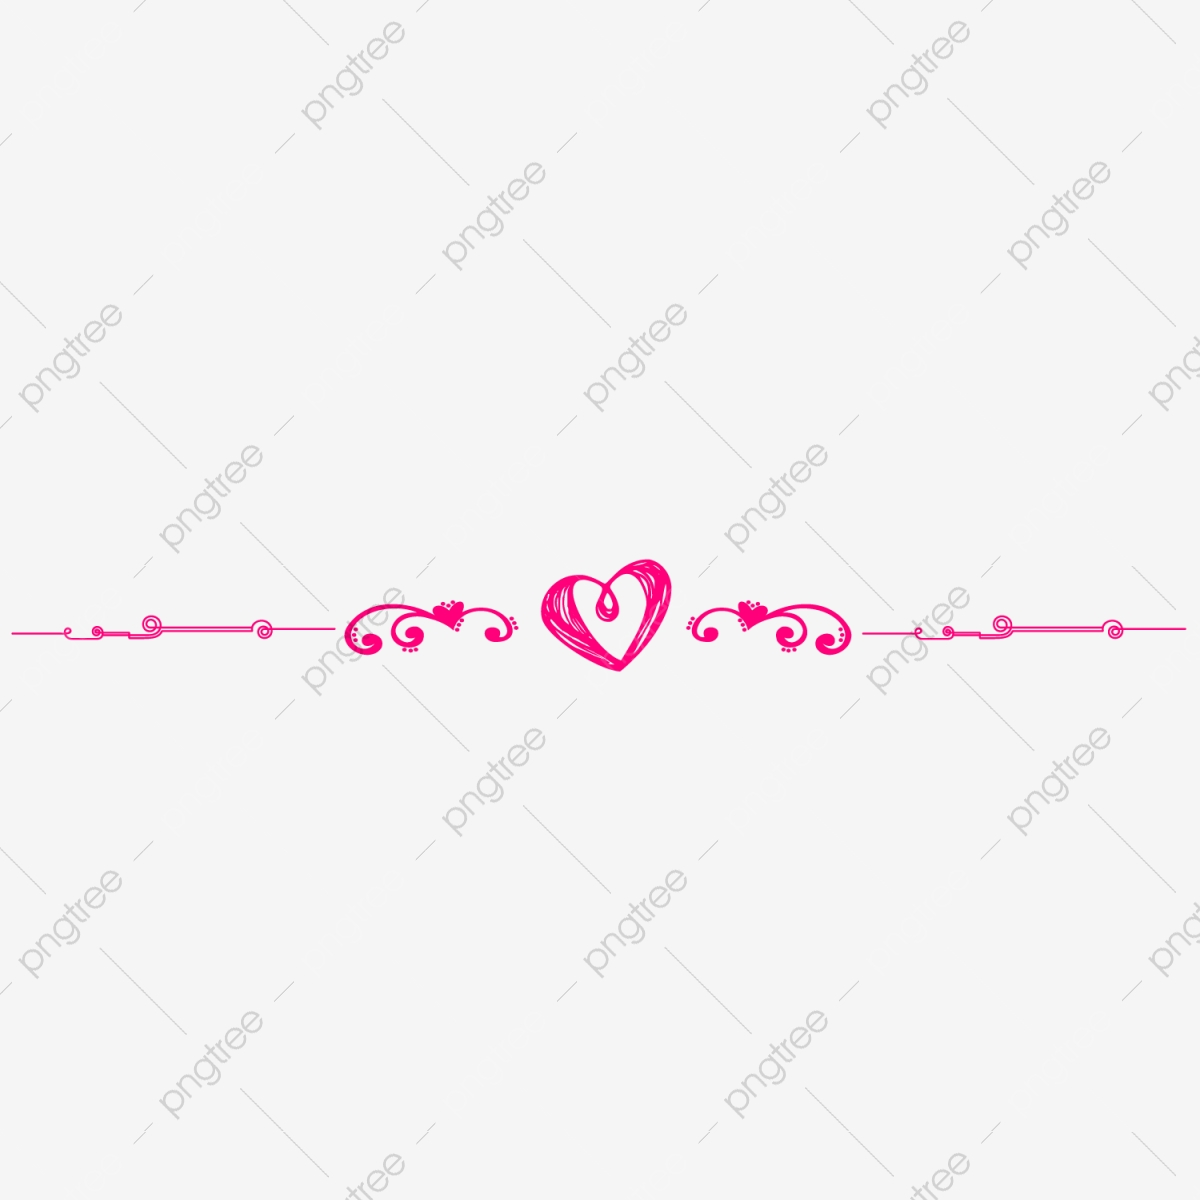 Line pink. Heart pattern division love